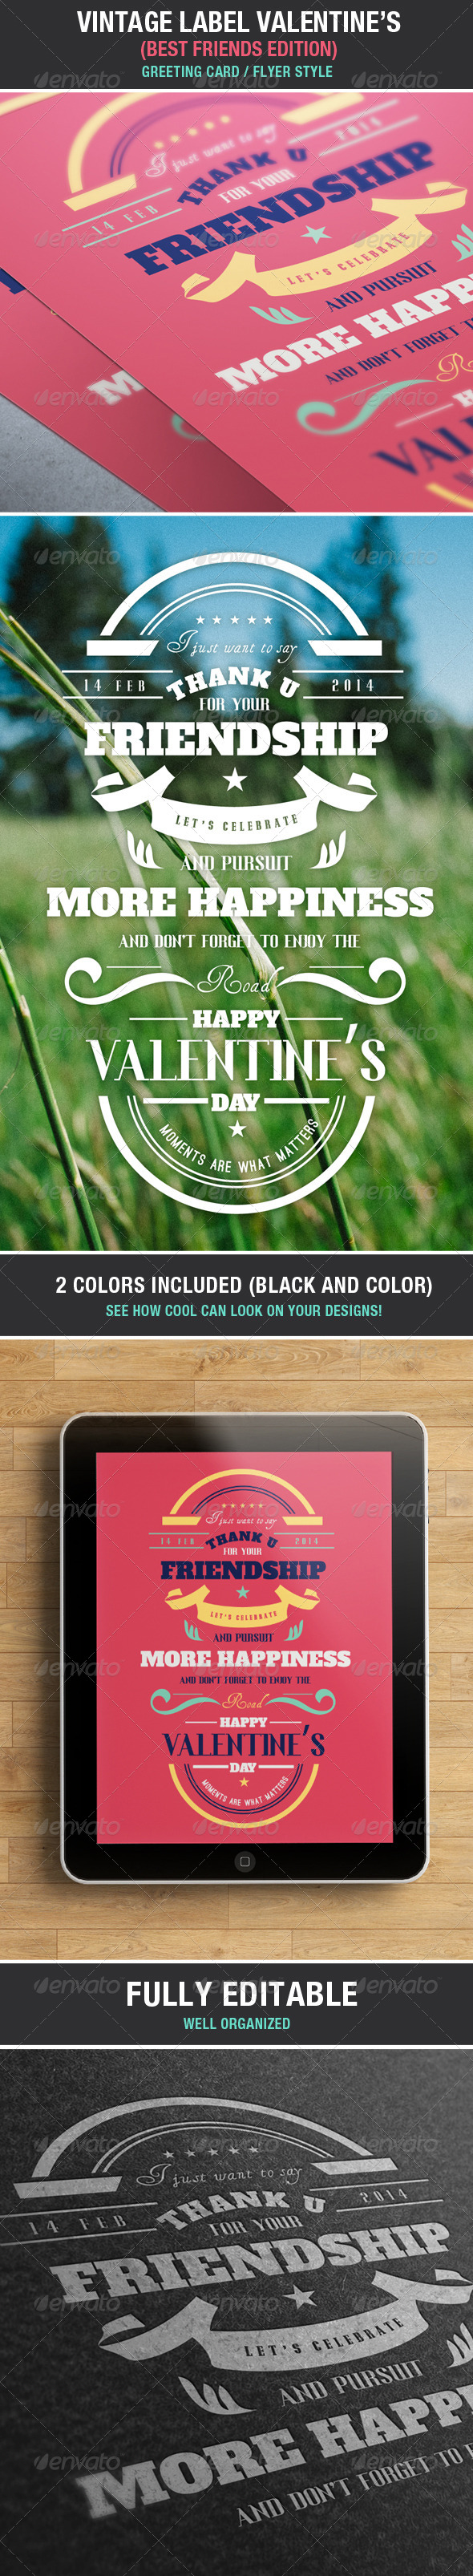 GraphicRiver Vintage Label Friends & Love Valentine s Edition 6746429